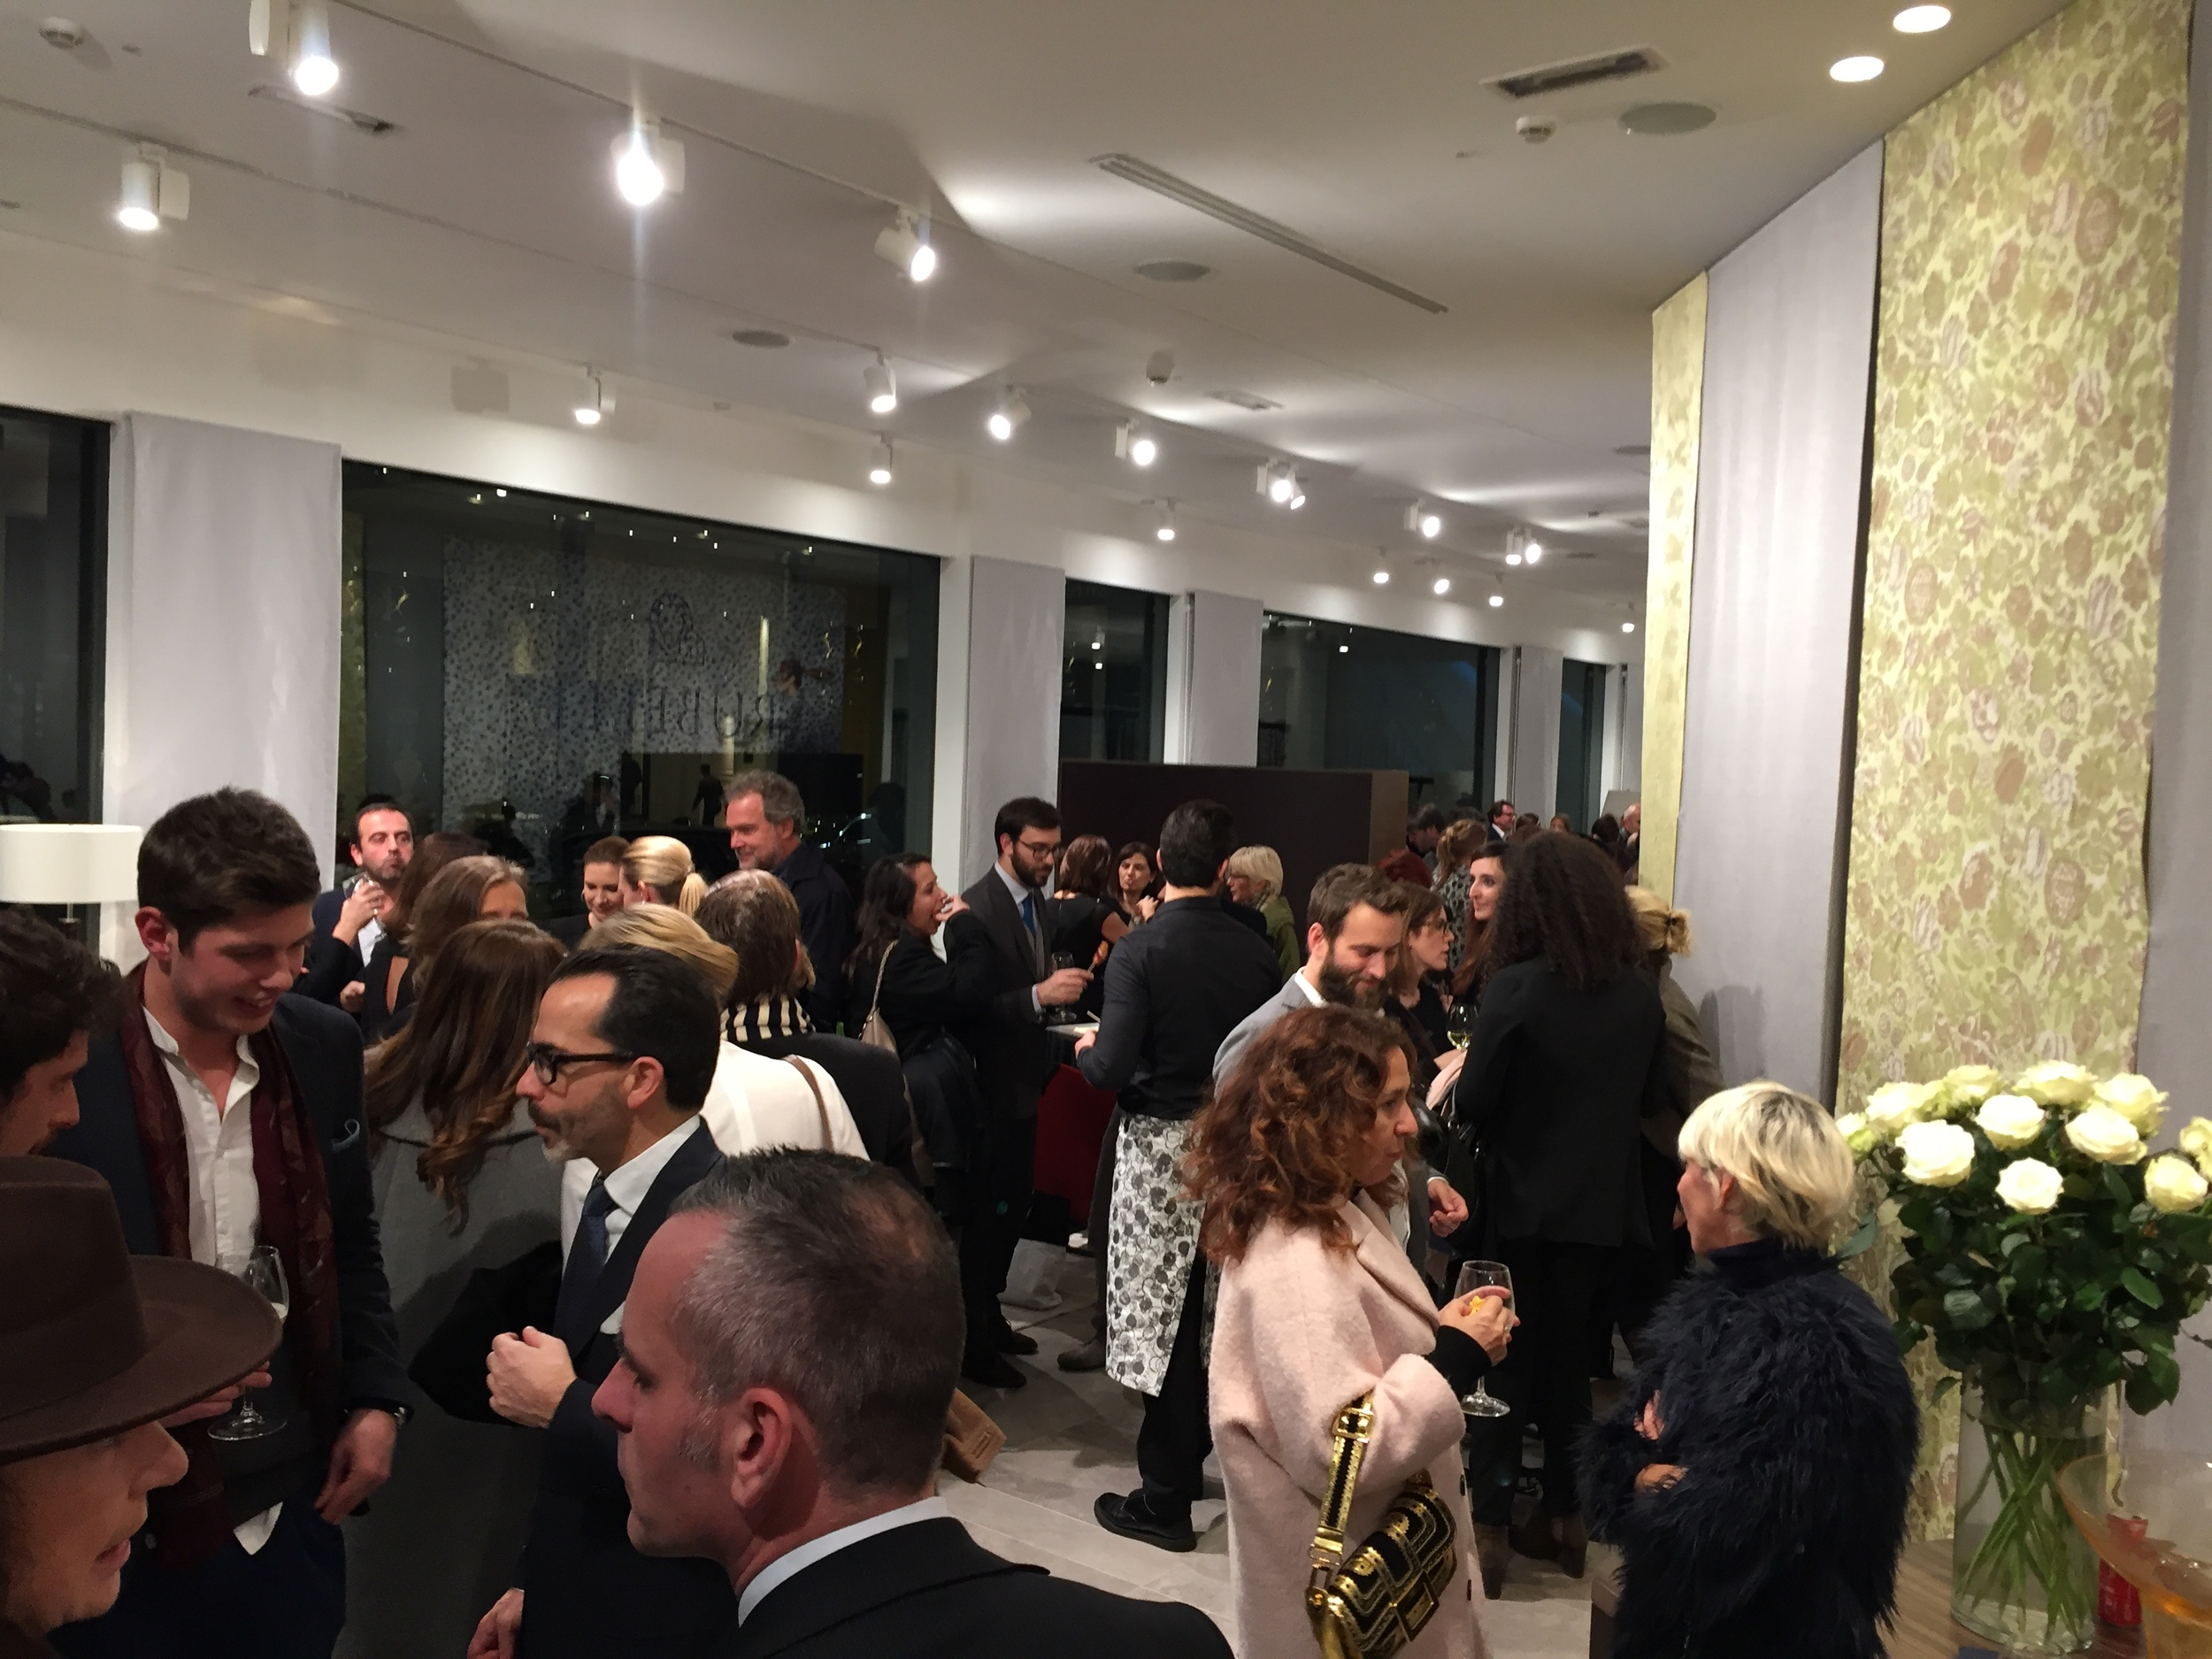 Party at the Rubelli showroom.